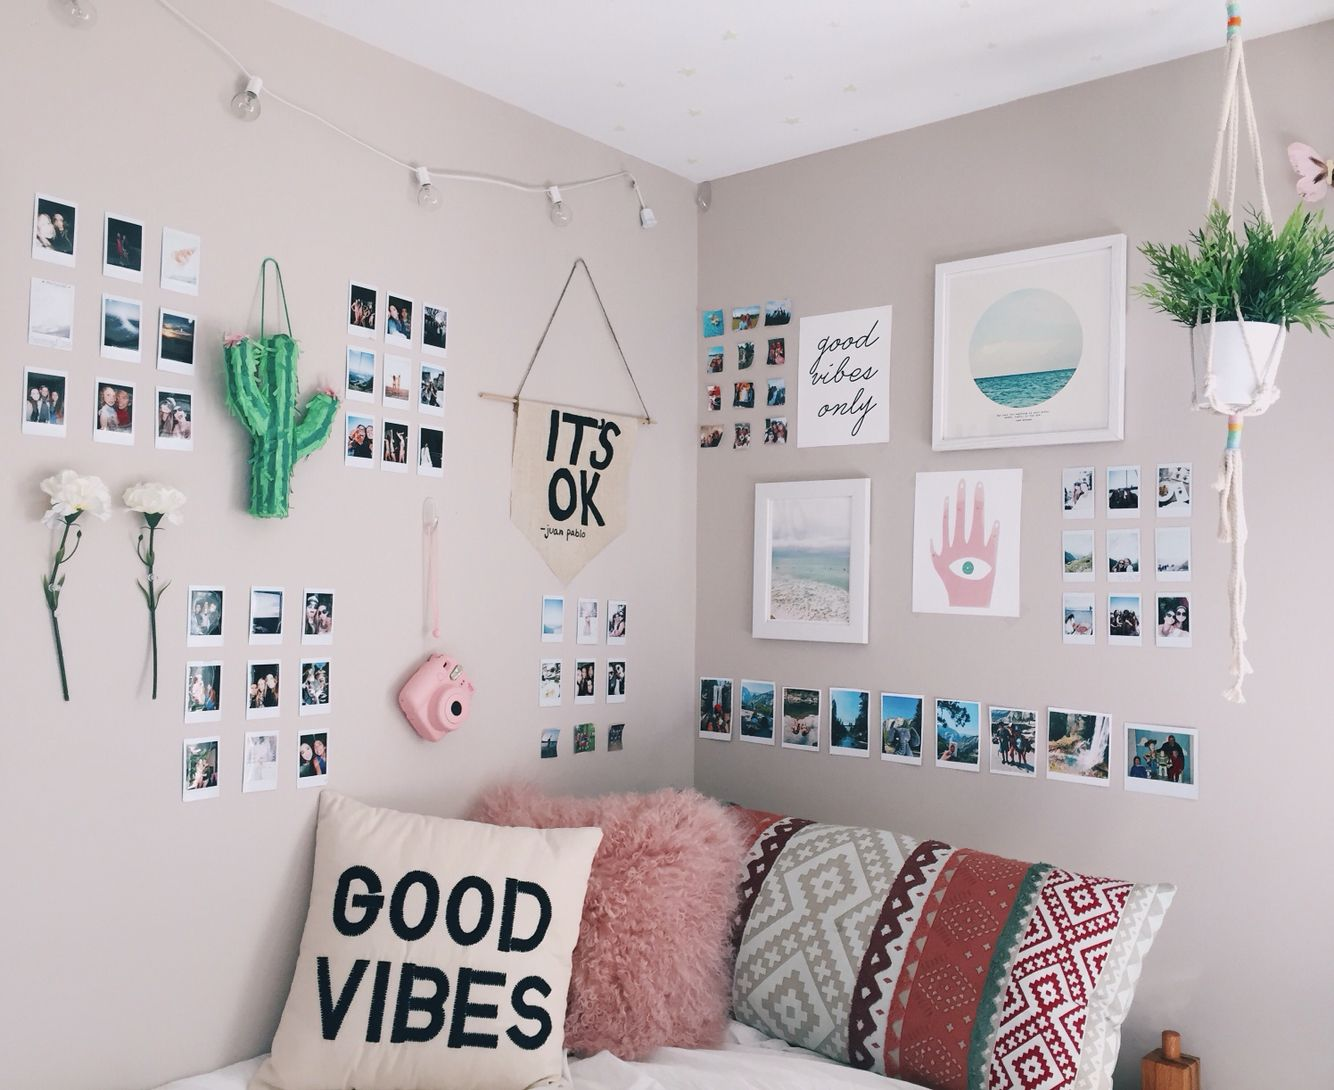 My Room Dorm Room Decor Wall Decor Bedroom Room Inspiration